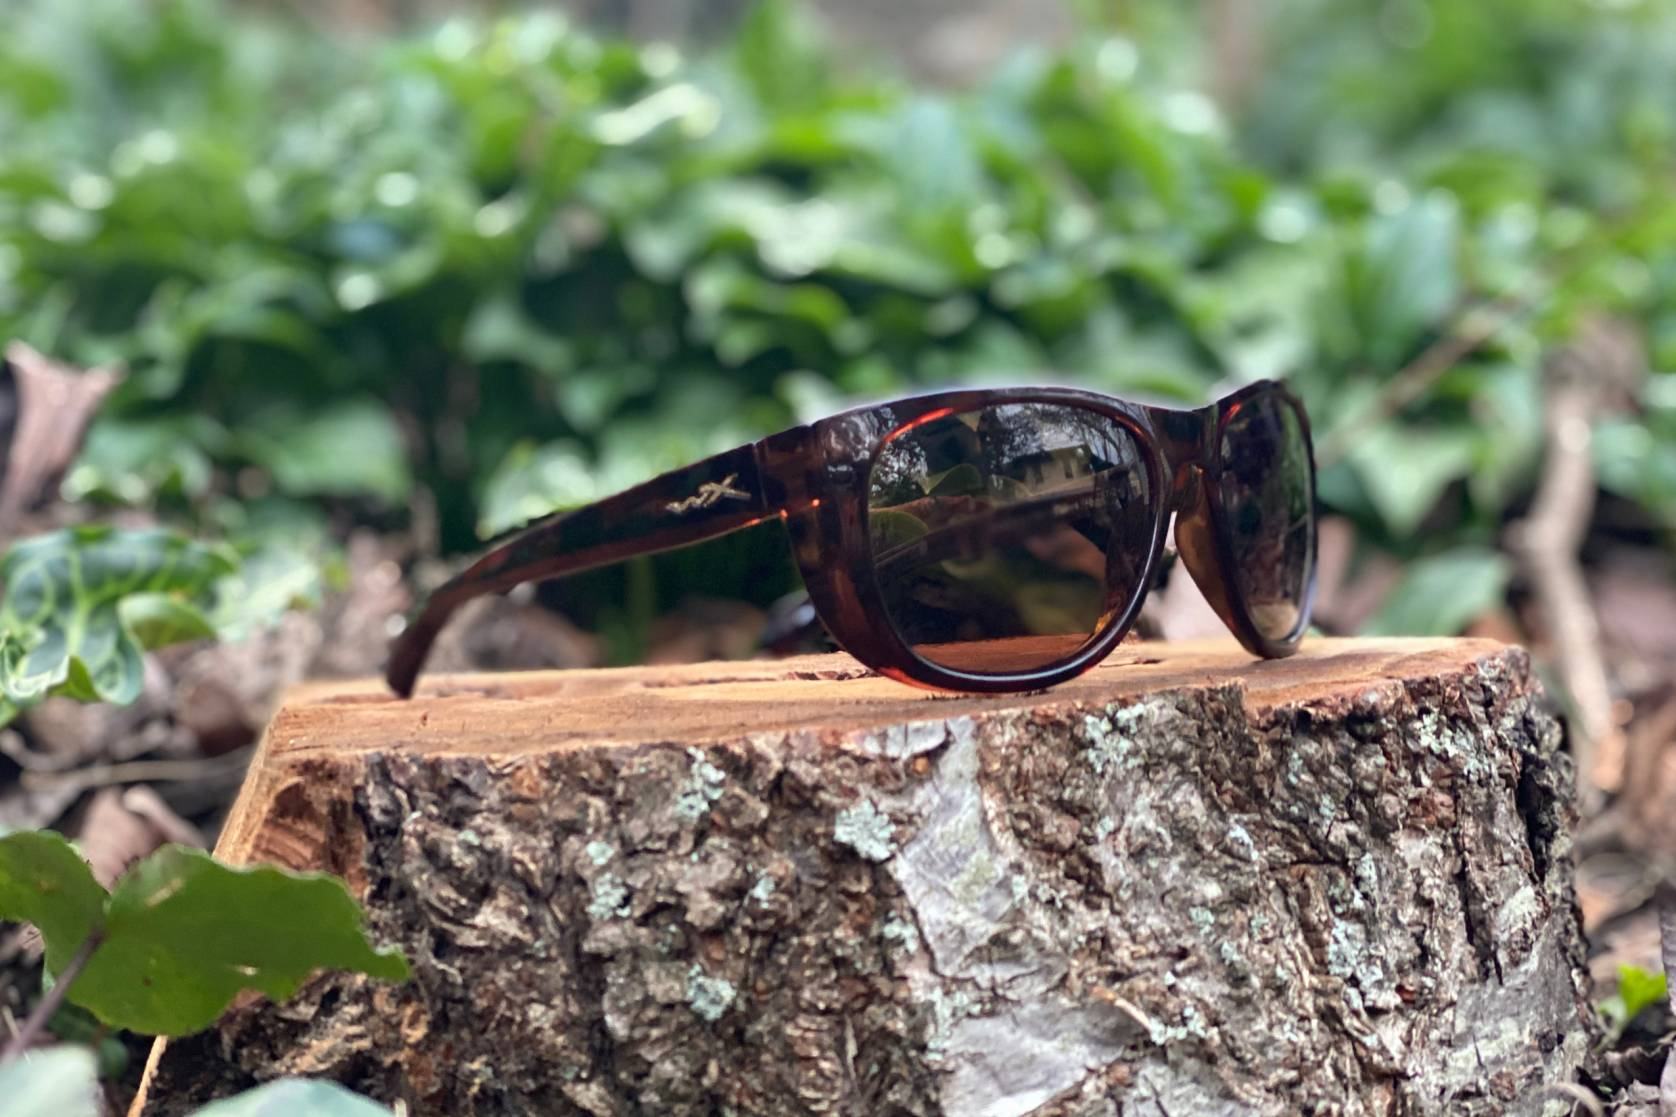 WIley X Captivate Weekender sunglasses